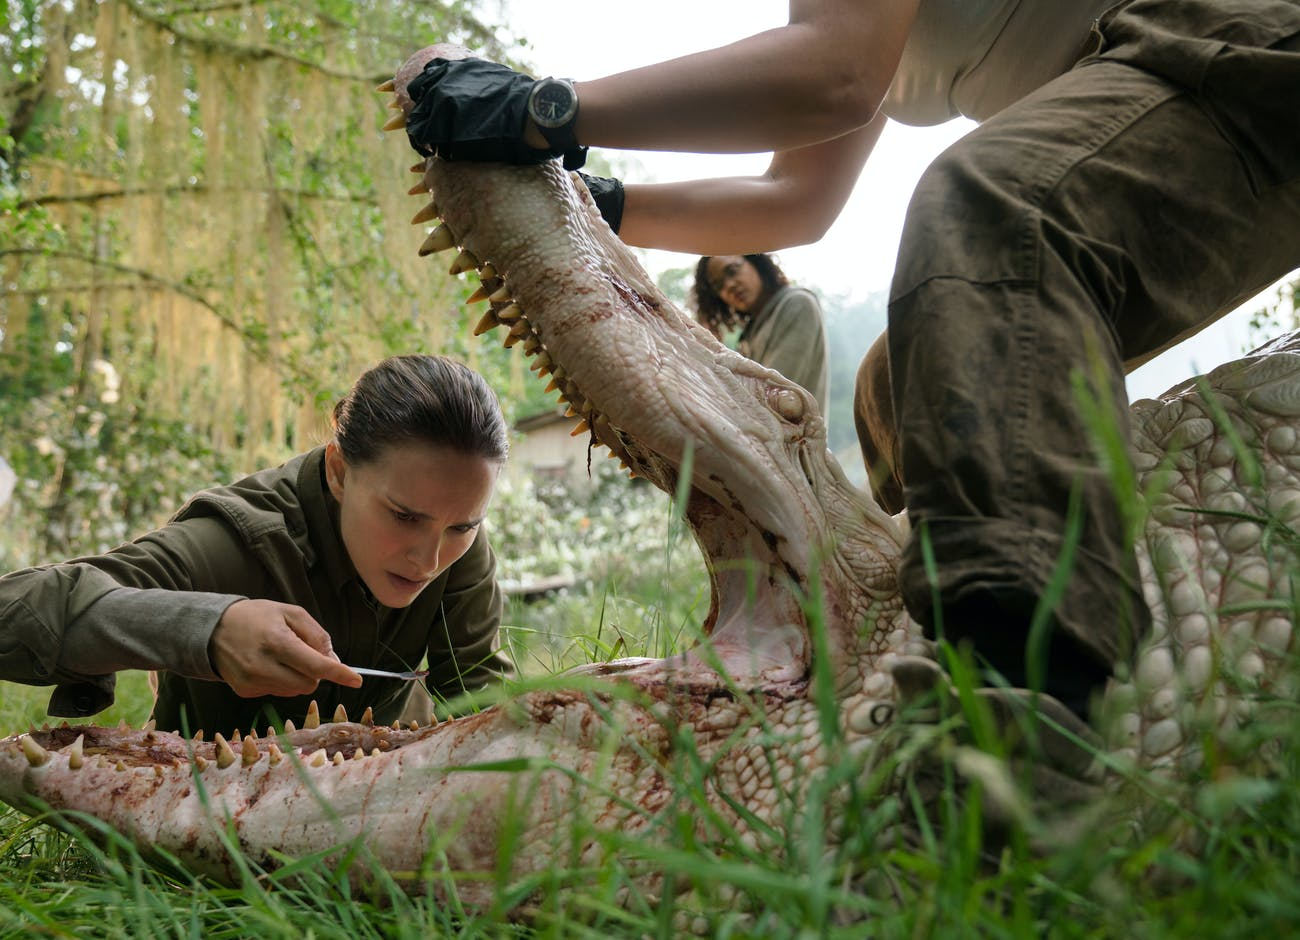 The first creature to threaten the team is an albino gator with shark's teeth.